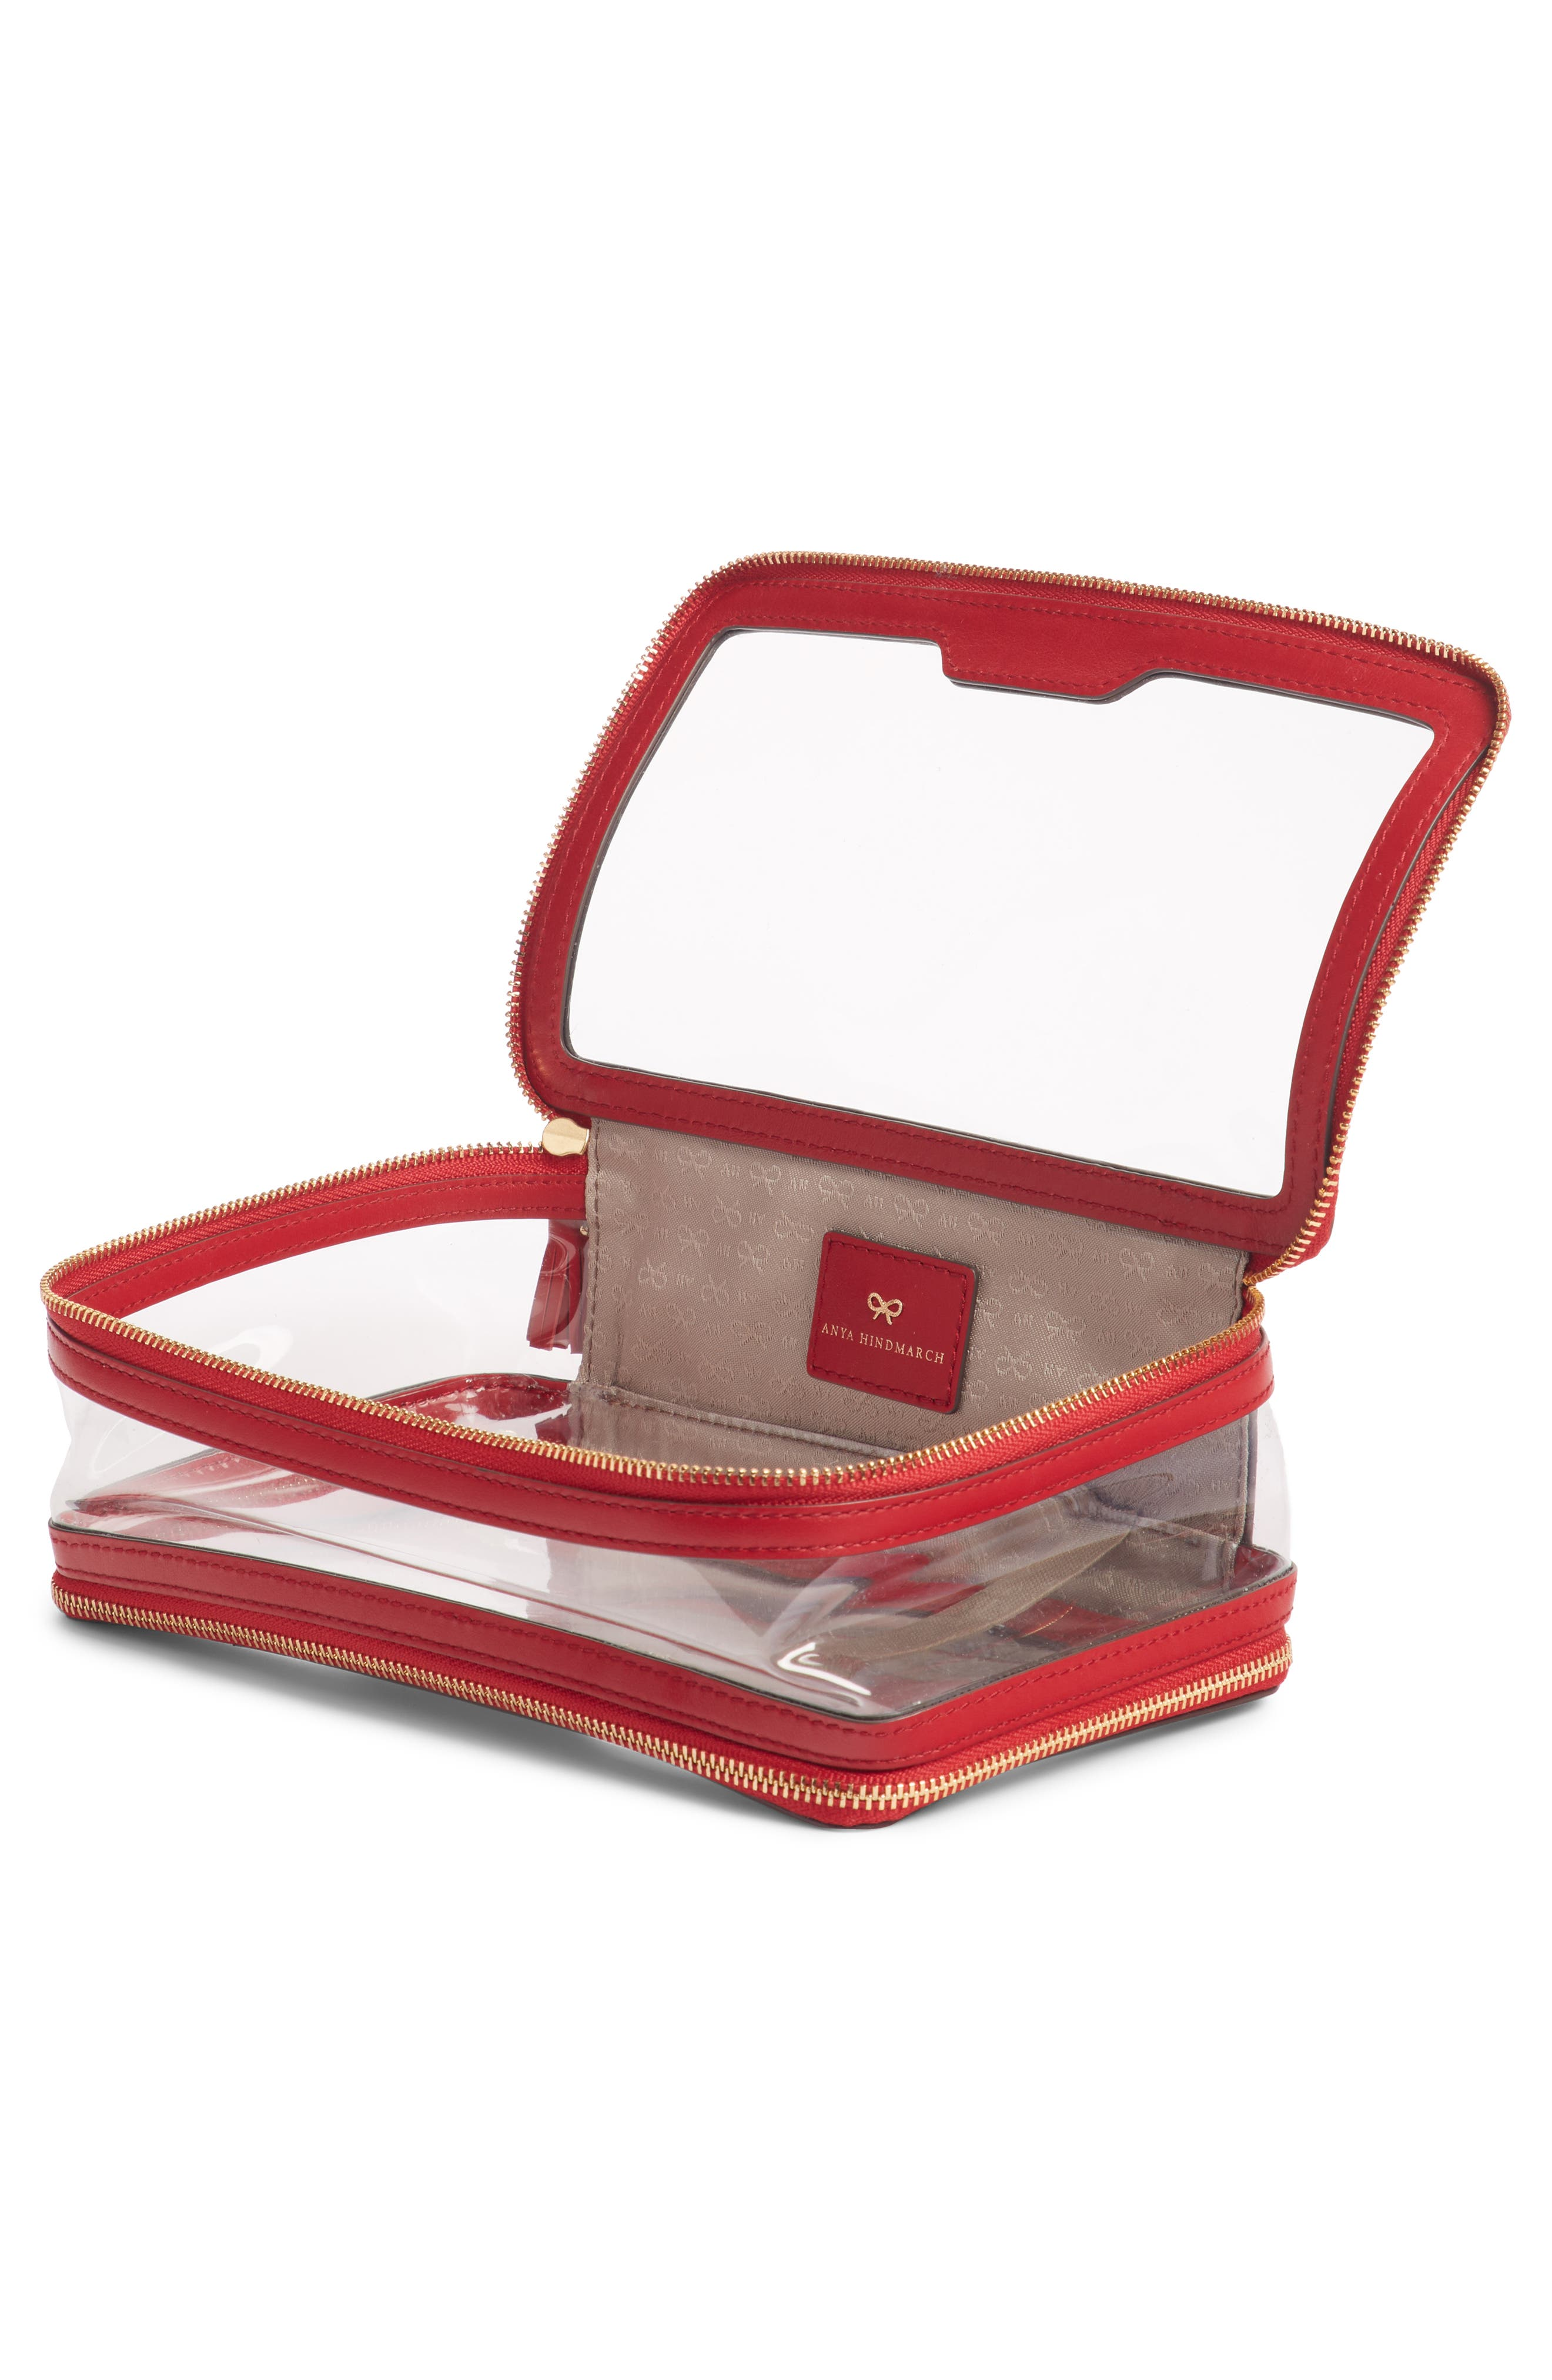 Inflight Clear Cosmetics Case,                             Alternate thumbnail 2, color,                             600